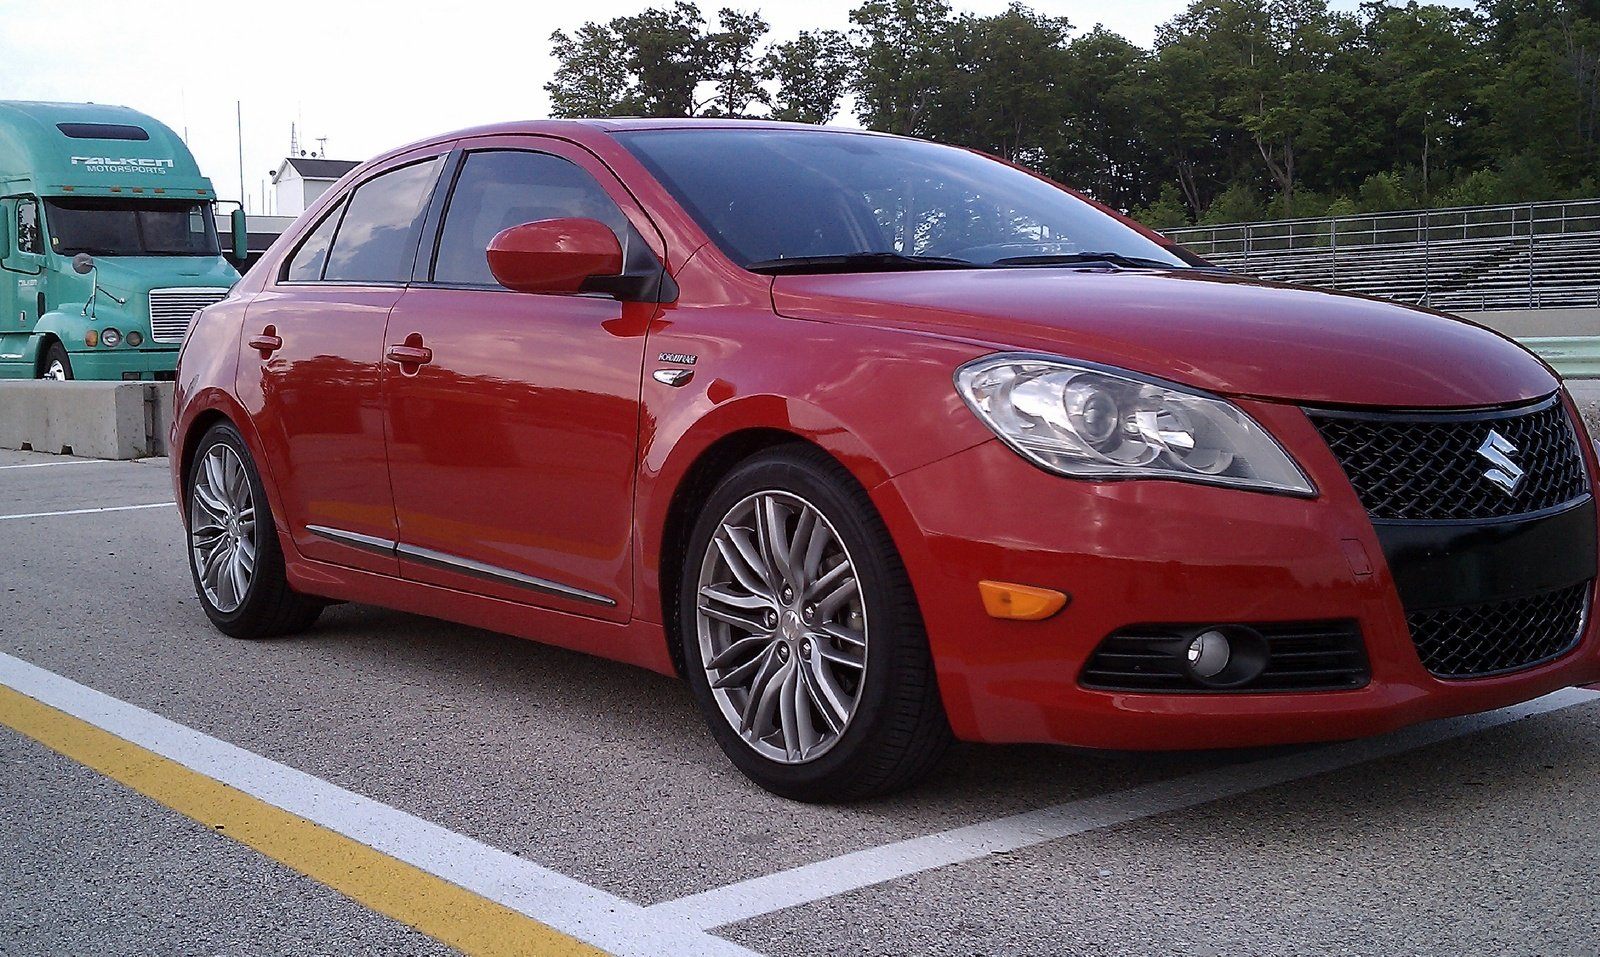 2010 suzuki kizashi turbo review top speed. Black Bedroom Furniture Sets. Home Design Ideas